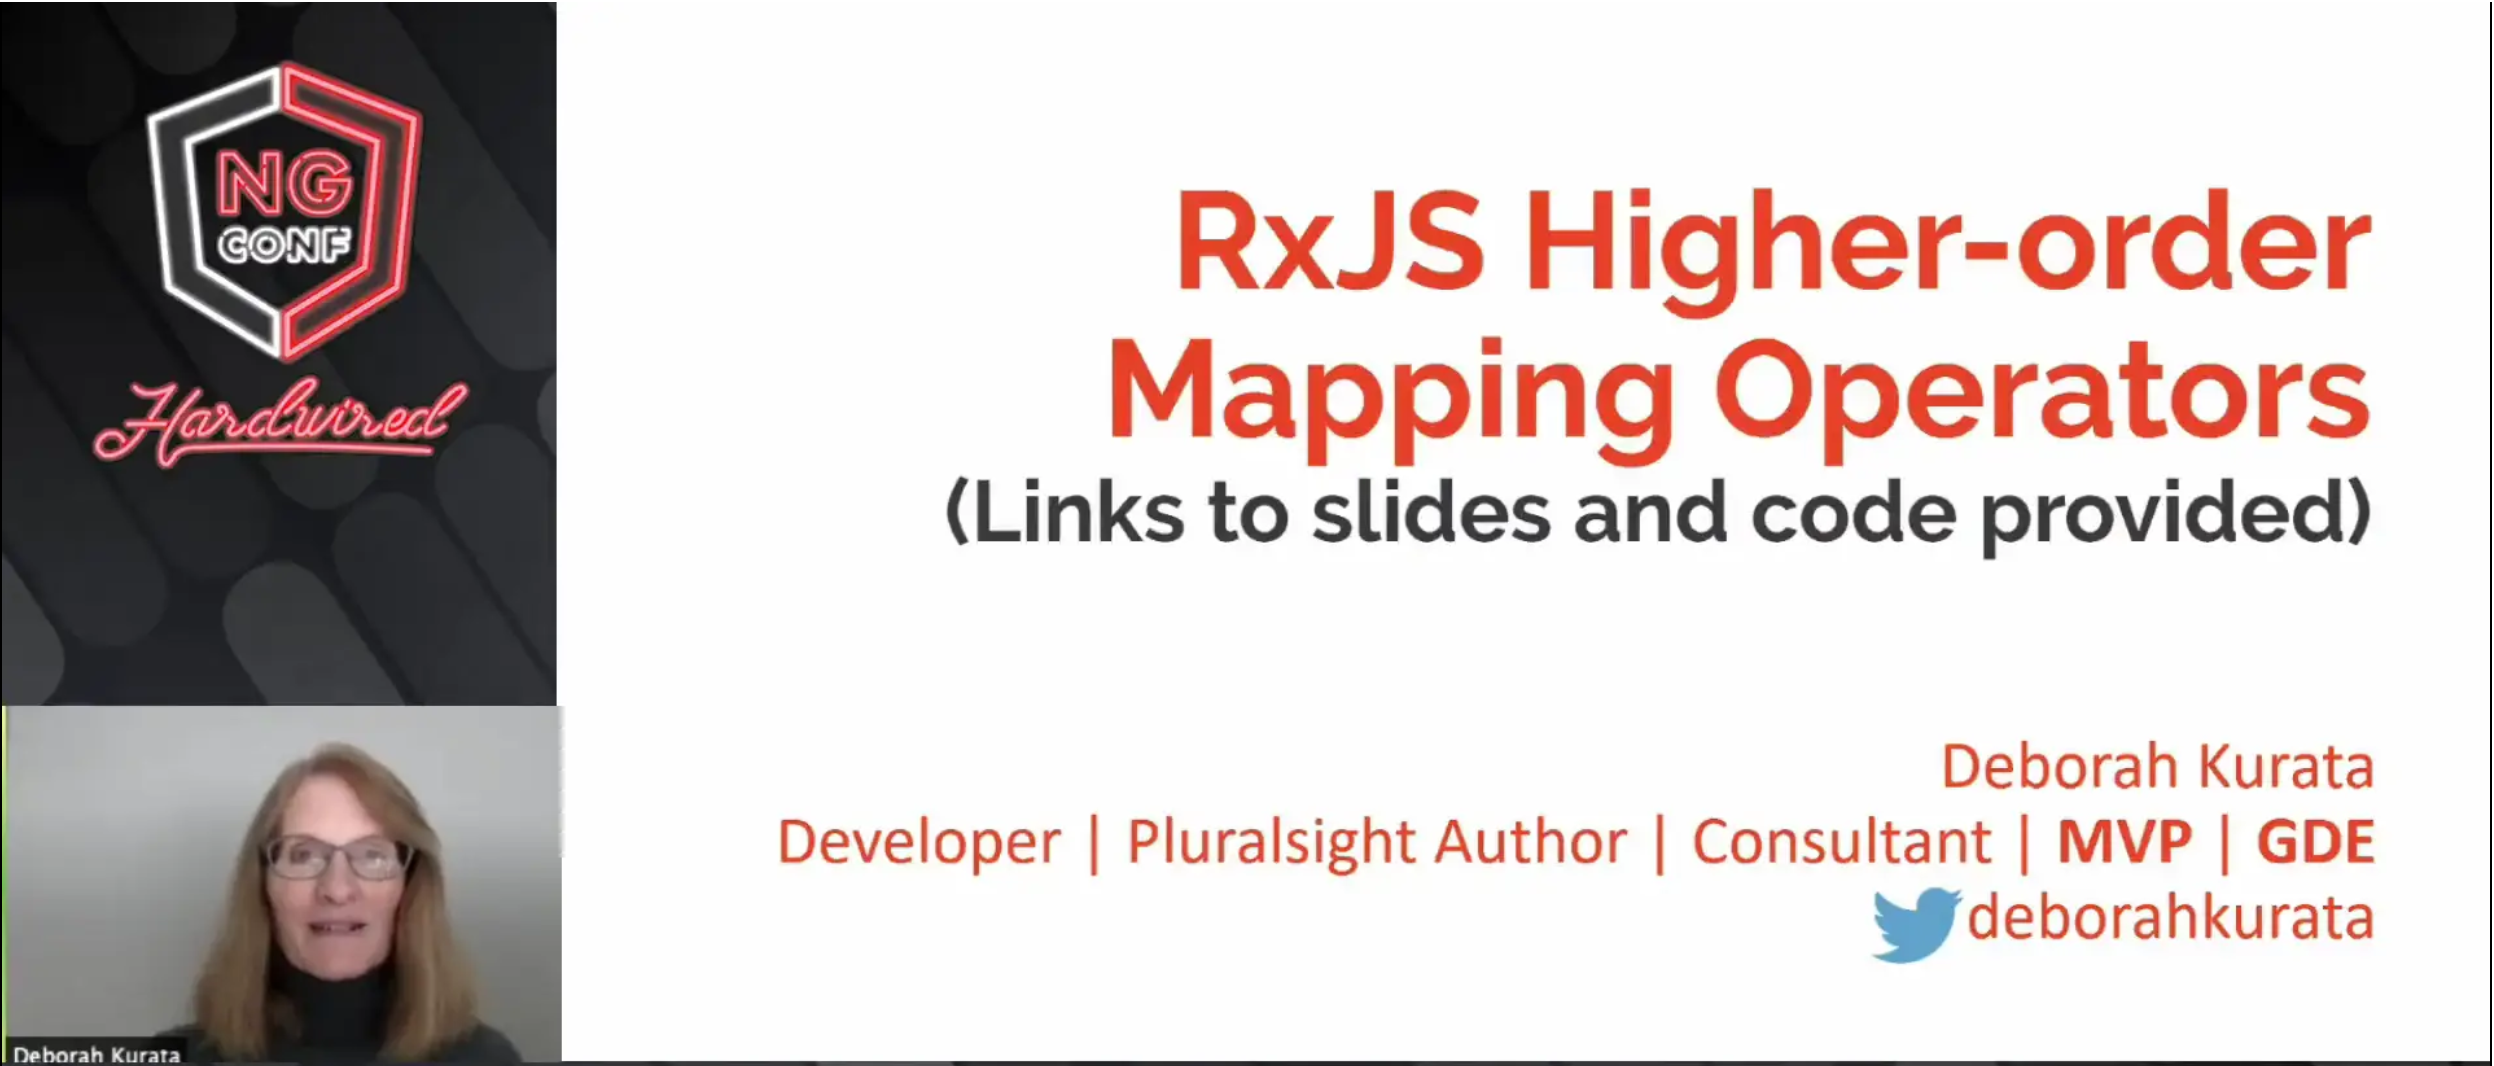 Why Should You Care About RxJS Higher-order Mapping Operators?